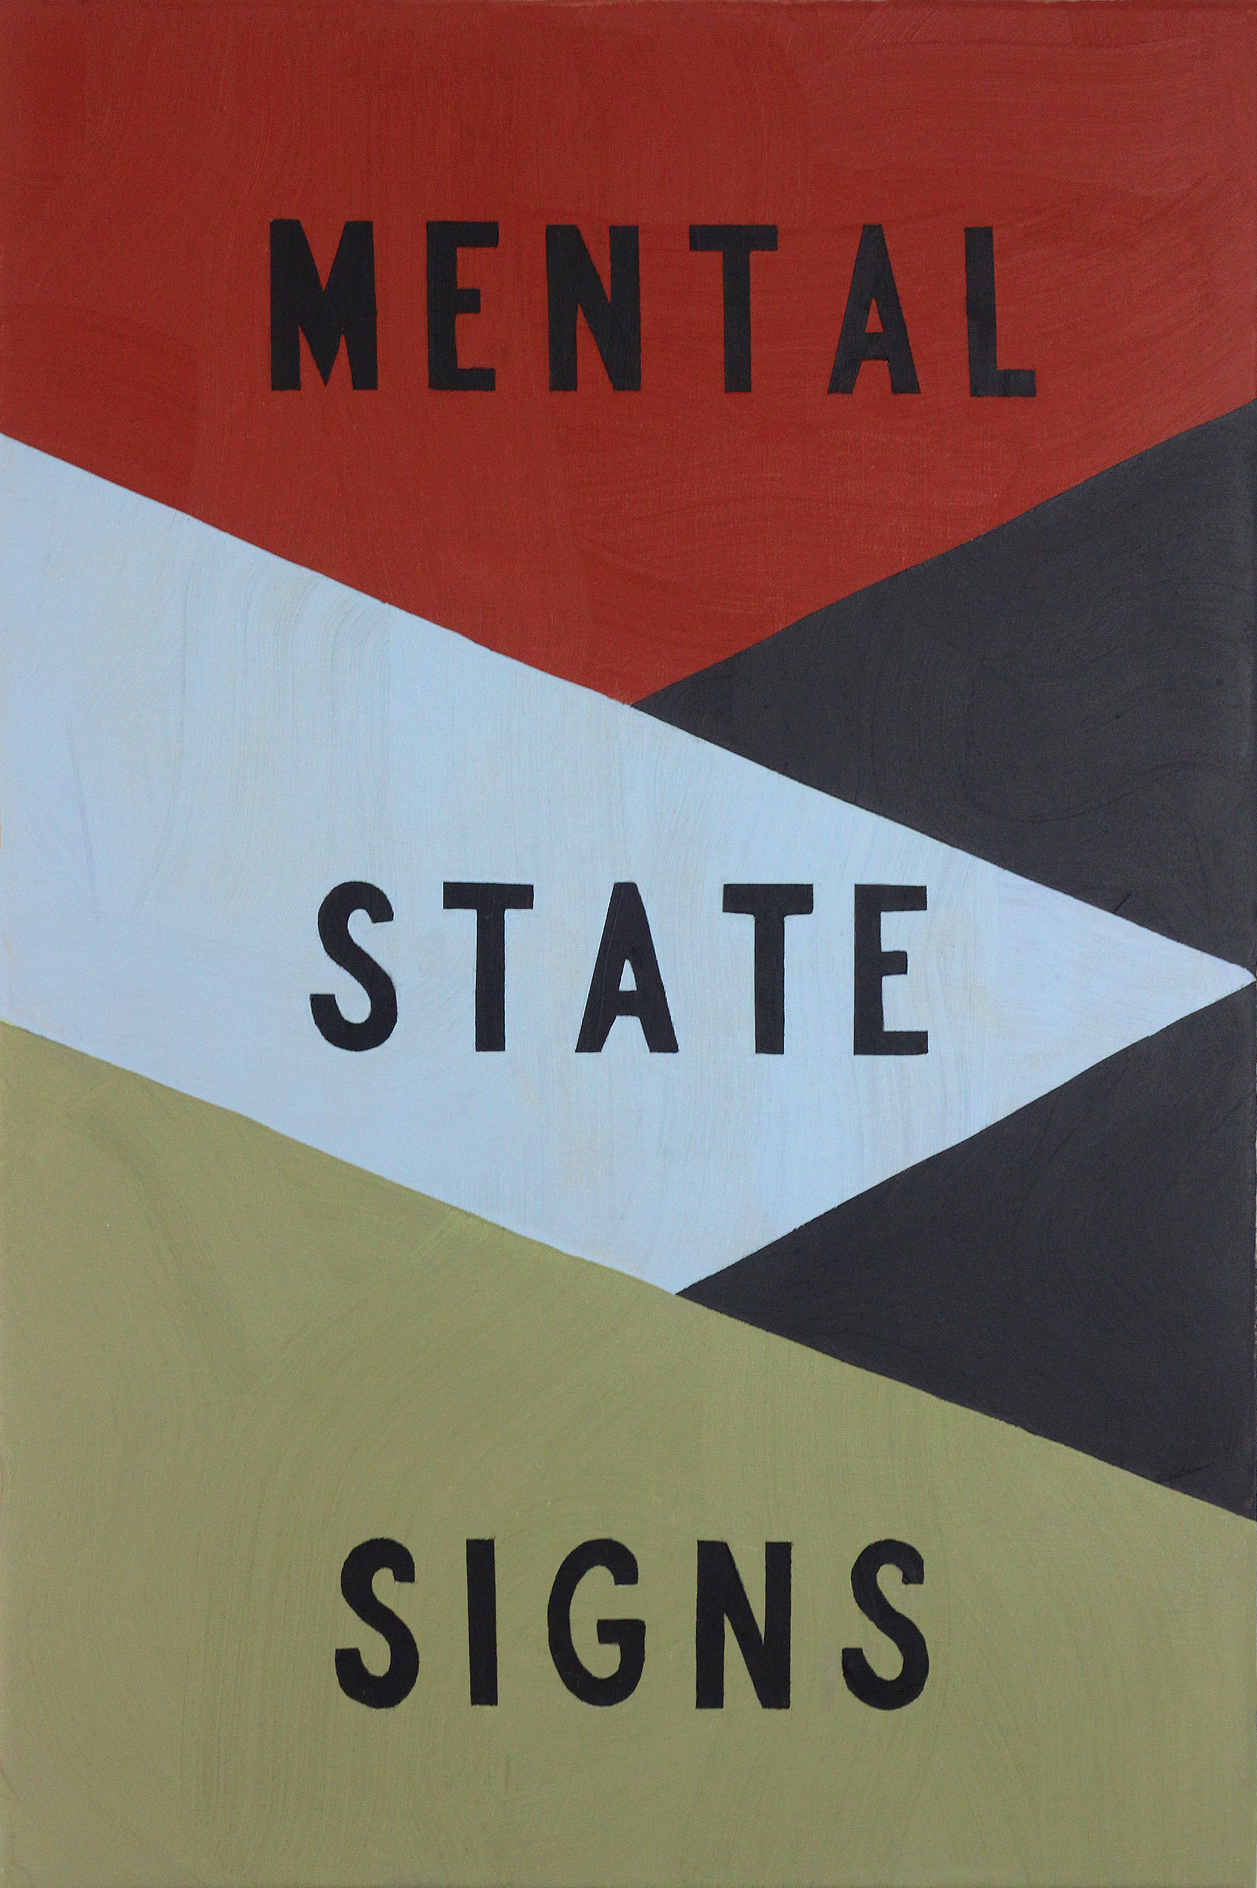 - Preview: Friday 1st June, 6-9pmOpen: Saturdays,12-5pm or by appointment until 24th June.Mental State Signs: A solo exhibition by artist Nick Jordan.Titled from a clinical term used for assessing mental health disorders, the exhibition explores themes of psychosis and surveillance, and includes new paintings, film, photography and found objects. Material on display includes schematic diagrams, clinical index cards, archival letters, audio visual equipment andilluminated signage, which the artist salvaged from an abandoned hospital's psychiatry video studio. Read MoreSaturday 16 June: The Speaker is a Type of MembraneAn evening of artists' film, performance and live music, featuring short films by Clara Casian, Jenny Holt, Nick Jordan, James Snazell, Mary Stark; and film/music performances by Sam McLoughlin & David Chatton Barker (Samandtheplants, Folklore Tapes), Tuskmoth (Lord Mongo, David Bez, Otis Jordan).Read more.